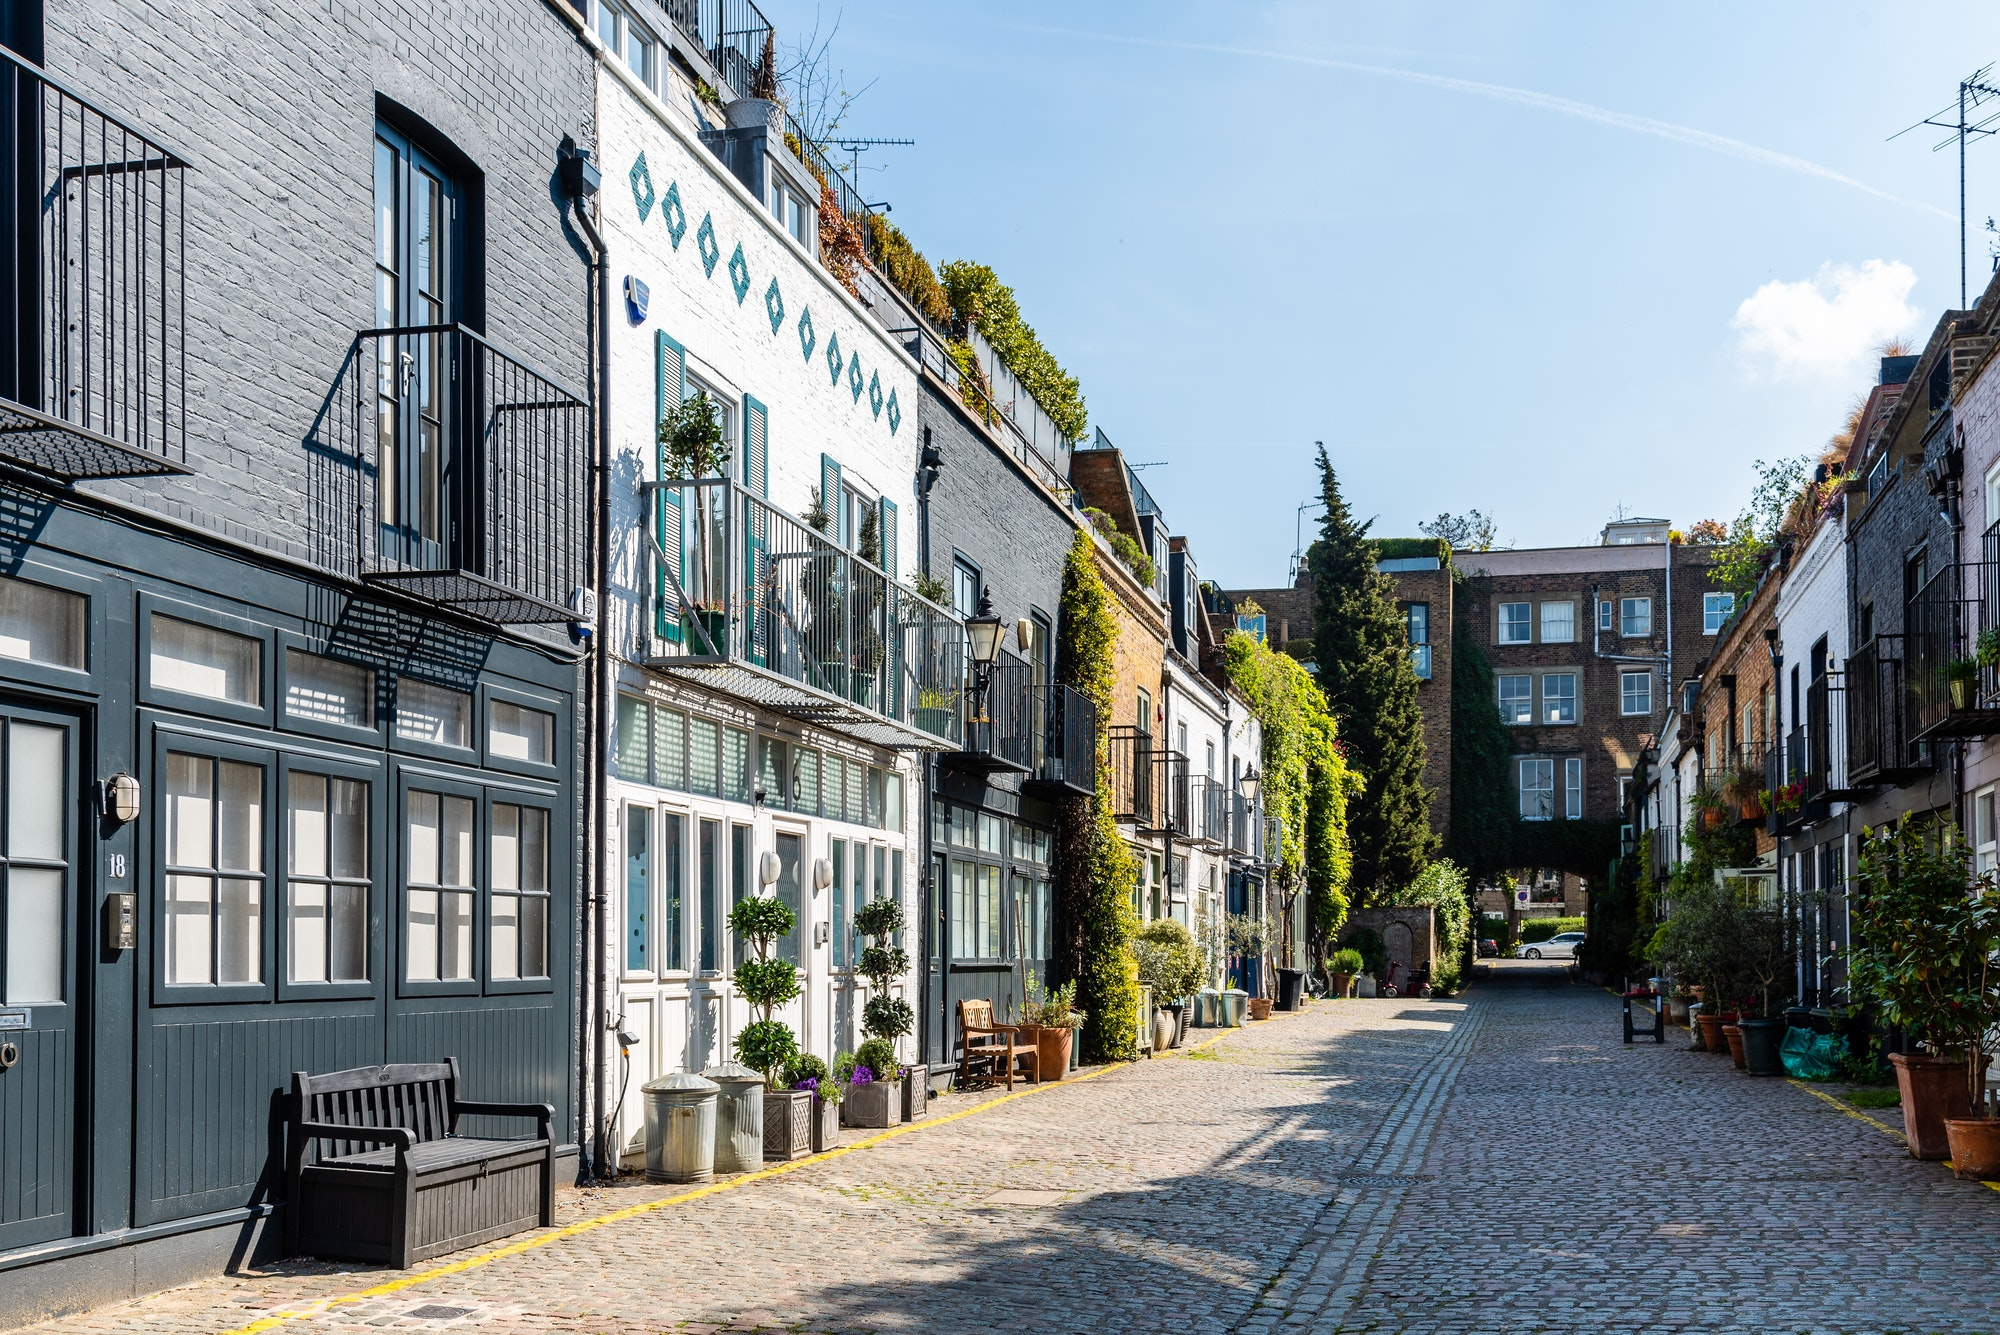 View of the picturesque St Lukes Mews alley in Notting Hill